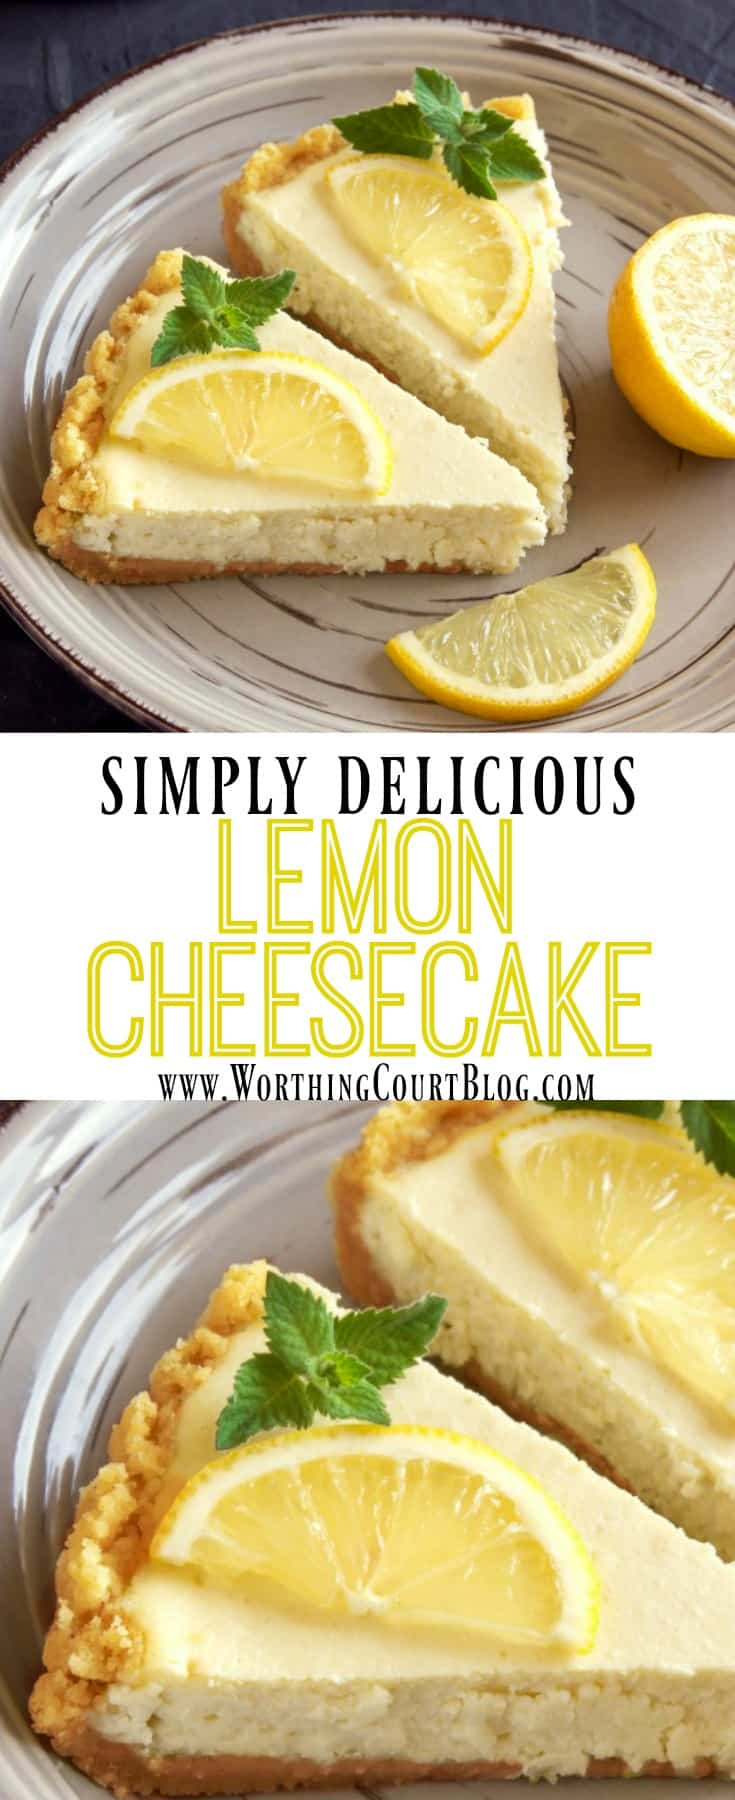 An easy recipe for lemon cheesecake || Worthing Court